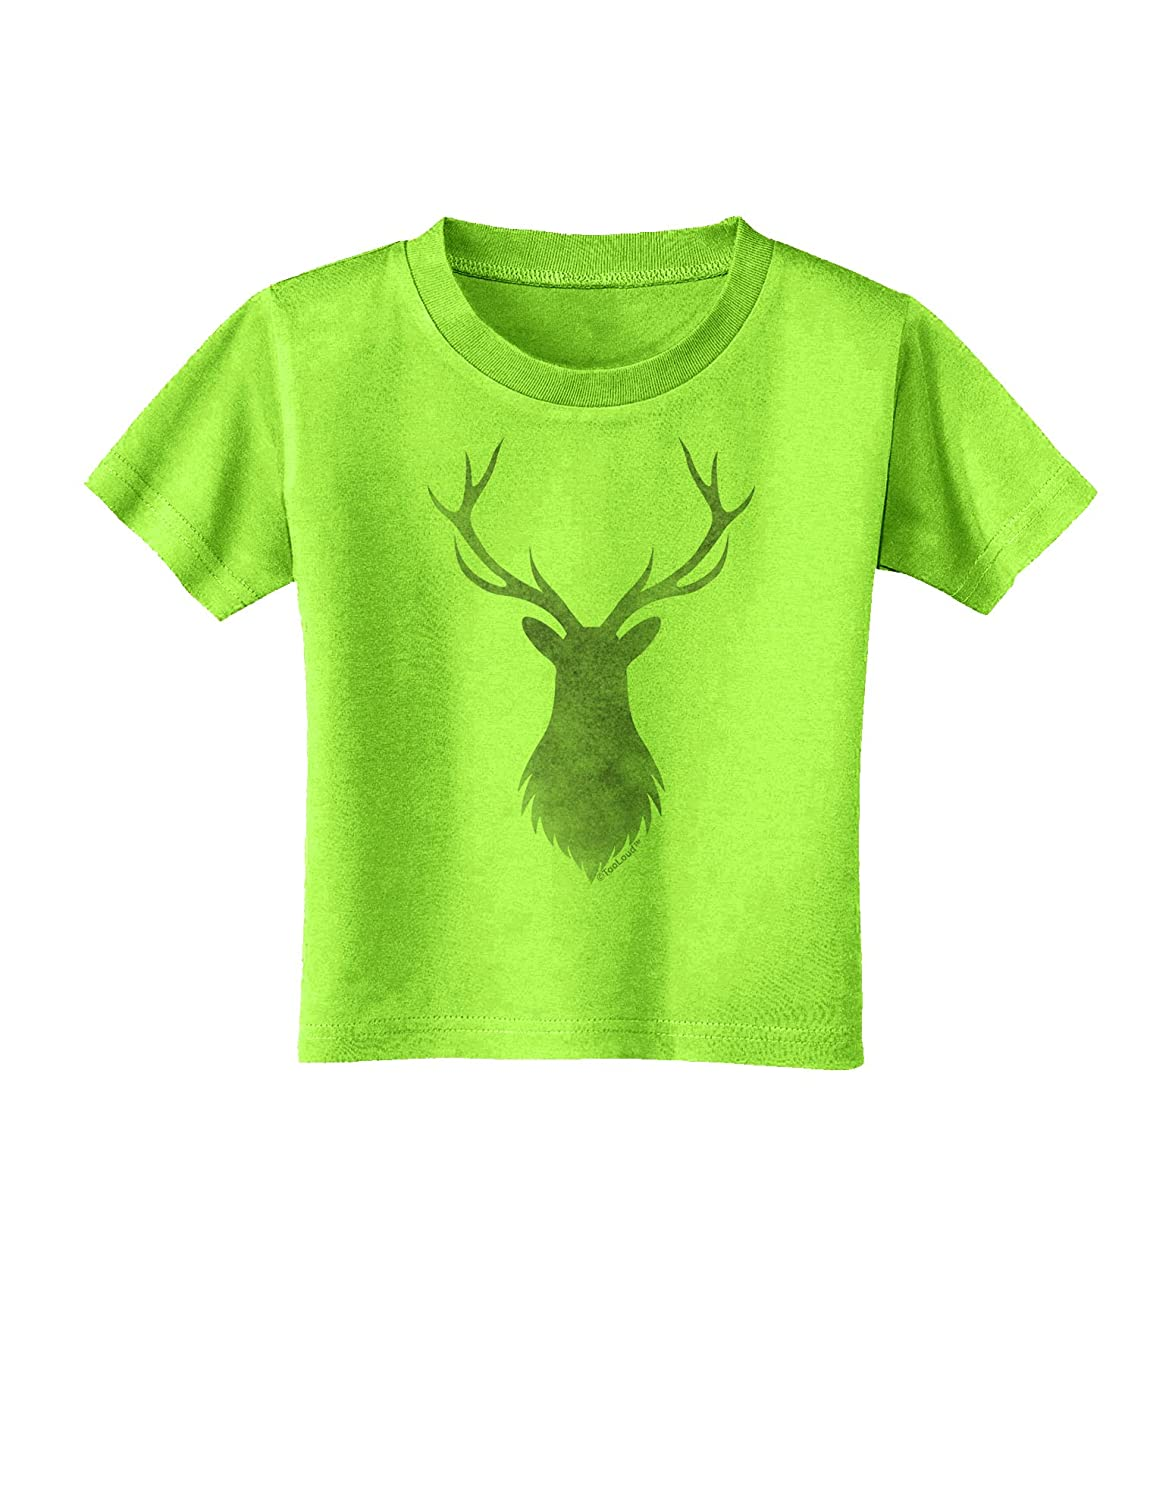 TooLoud Majestic Stag Distressed Toddler T-Shirt